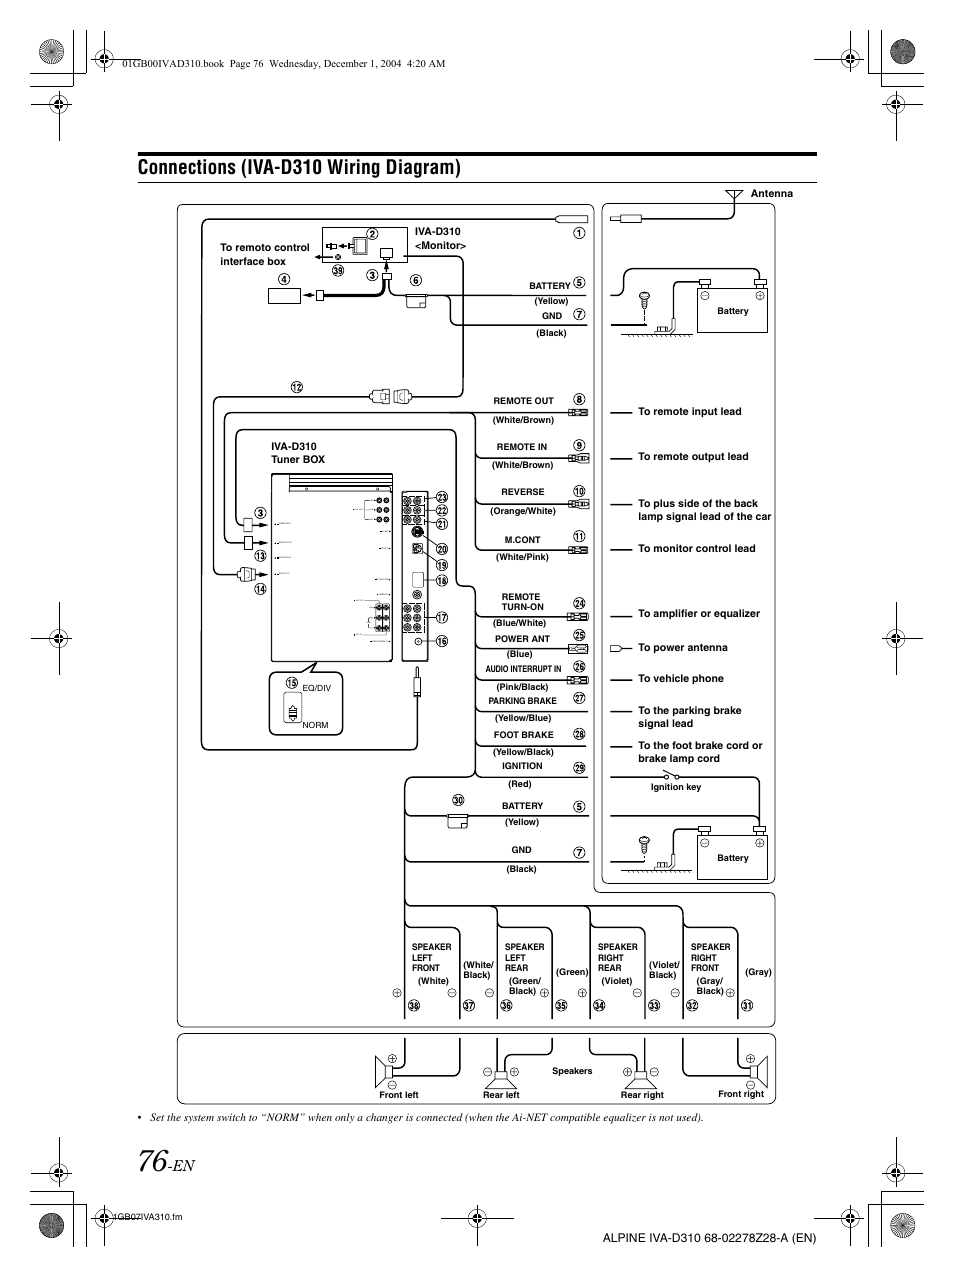 alpine iva d310 page78?resize\\\=665%2C891 alpine iva w205 wiring harness alpine iva w505 \u2022 wiring diagram alpine cde 102 wiring harness at downloadfilm.co